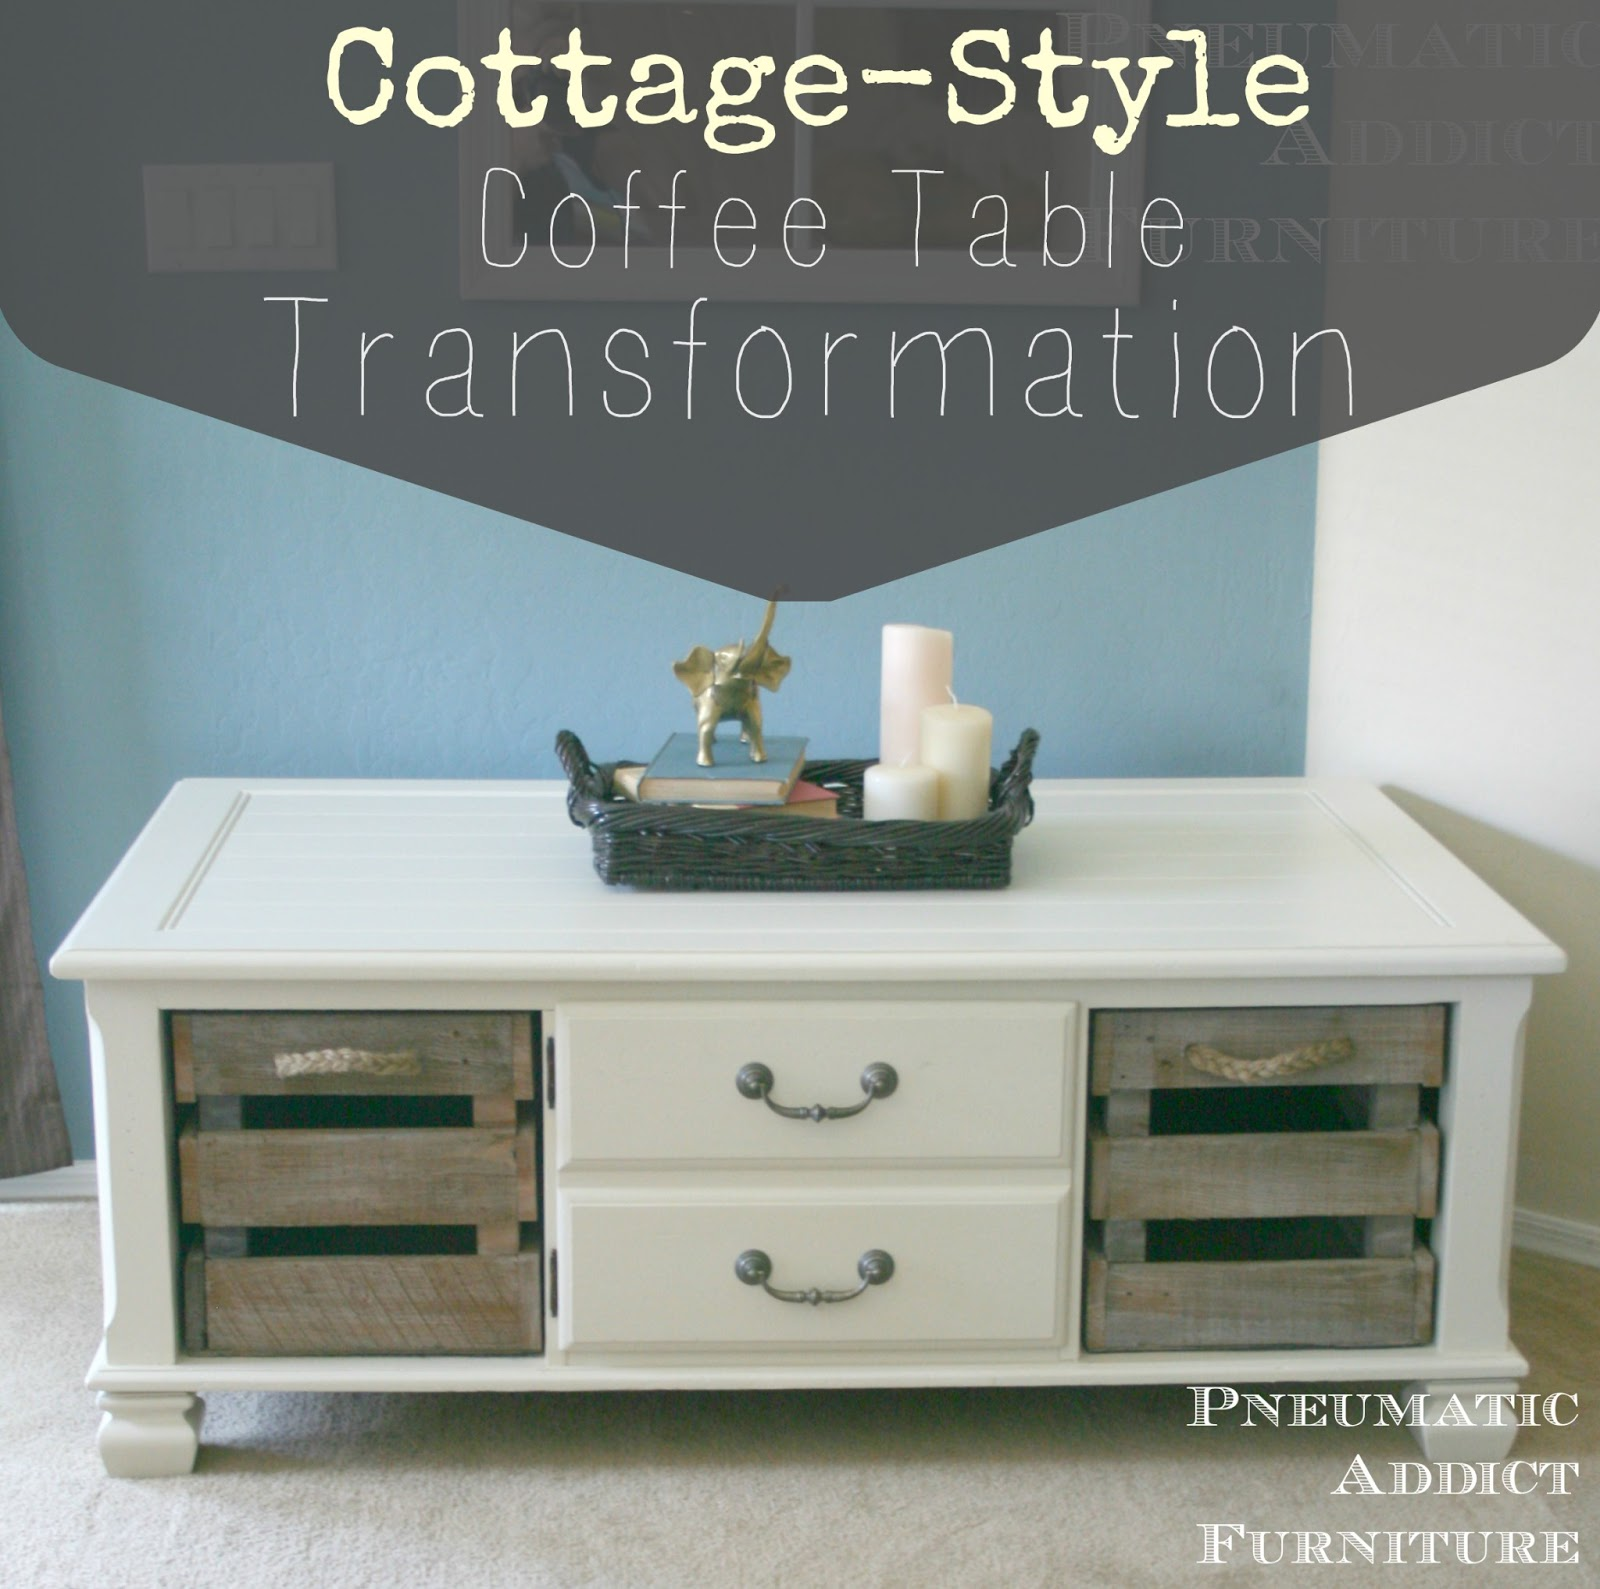 Cottage-Style Coffee Table Transformation | Pneumatic Addict